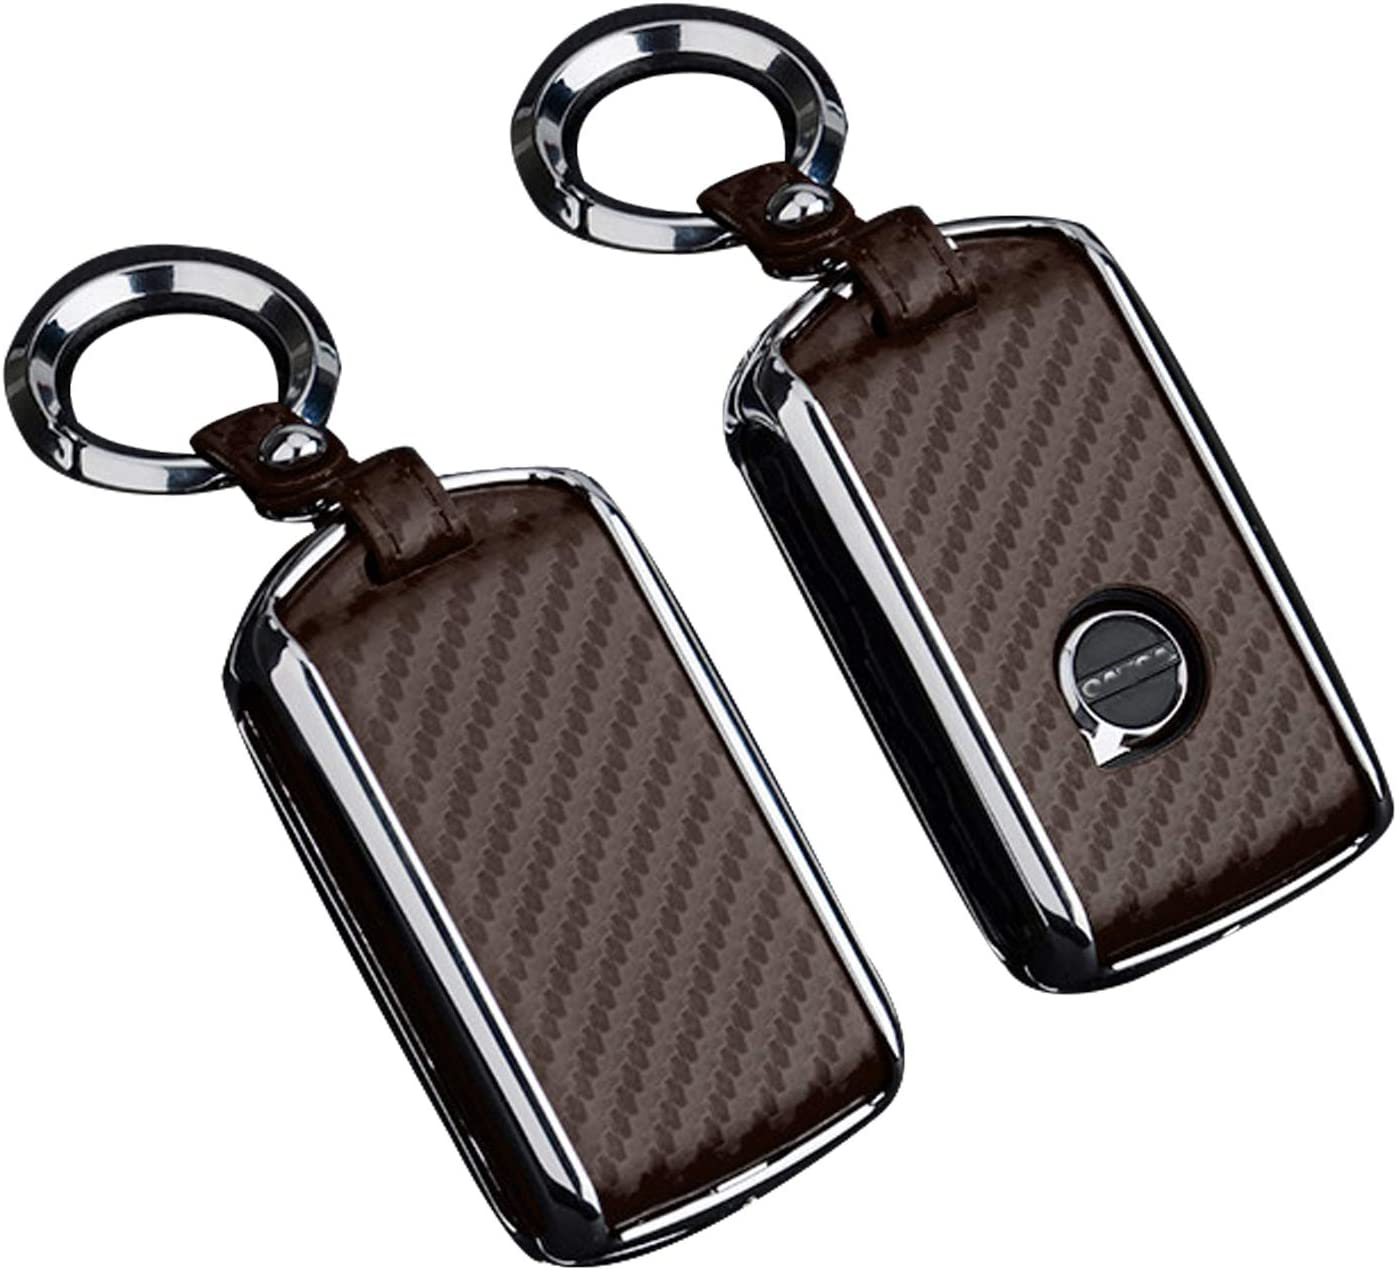 red JOJOLOVEU Car Remote Flip Key Fob Shell Cover Case Galvanized Alloy for Volvo XC40 XC60 S90 XC90 V90 2017 2018 T5 T6 2015 2016 T8